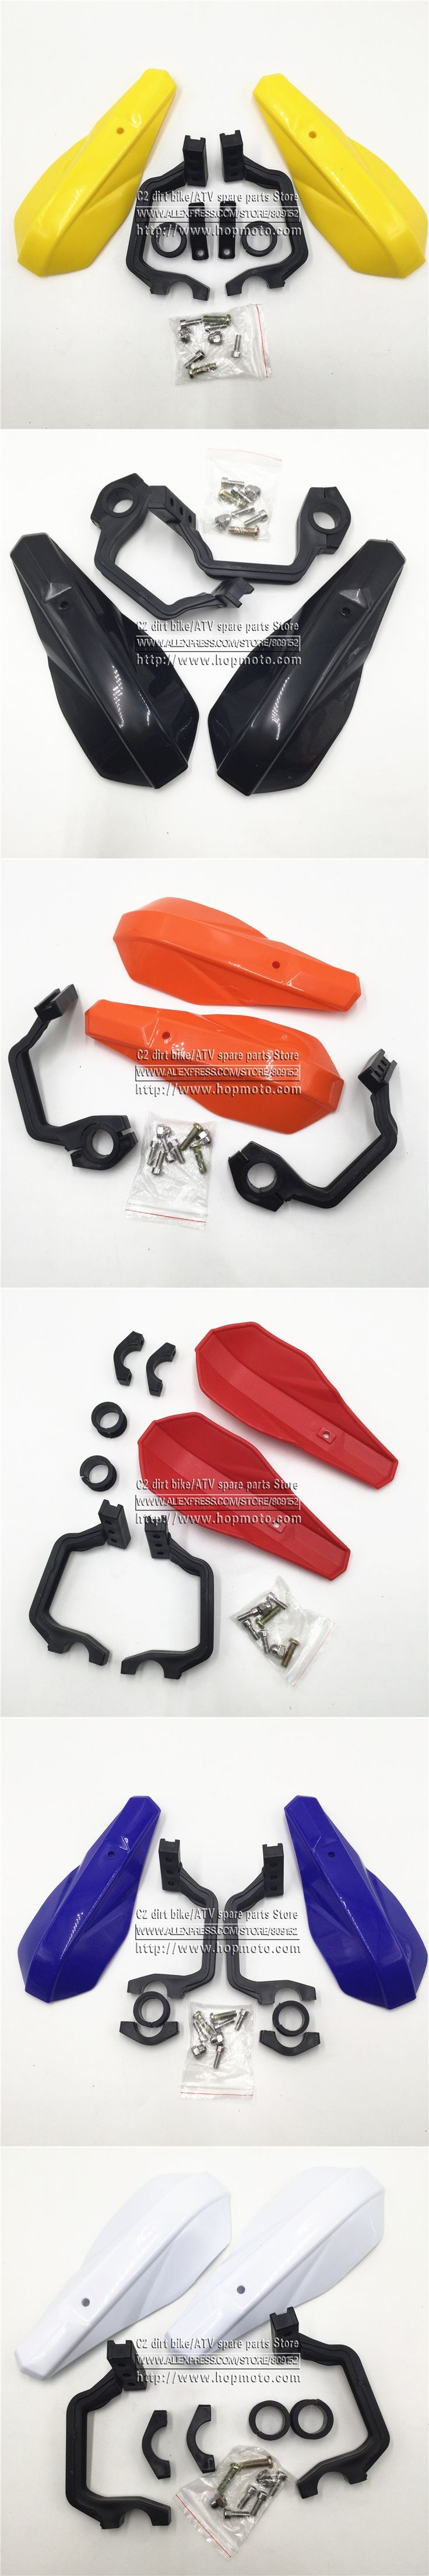 Handle bar Brush Bar Hand Guards Handguard Protector Protection Plastic 22mm  KTM EXC XC SX SXF XCW XCF EXCF XCR SMR DUKE